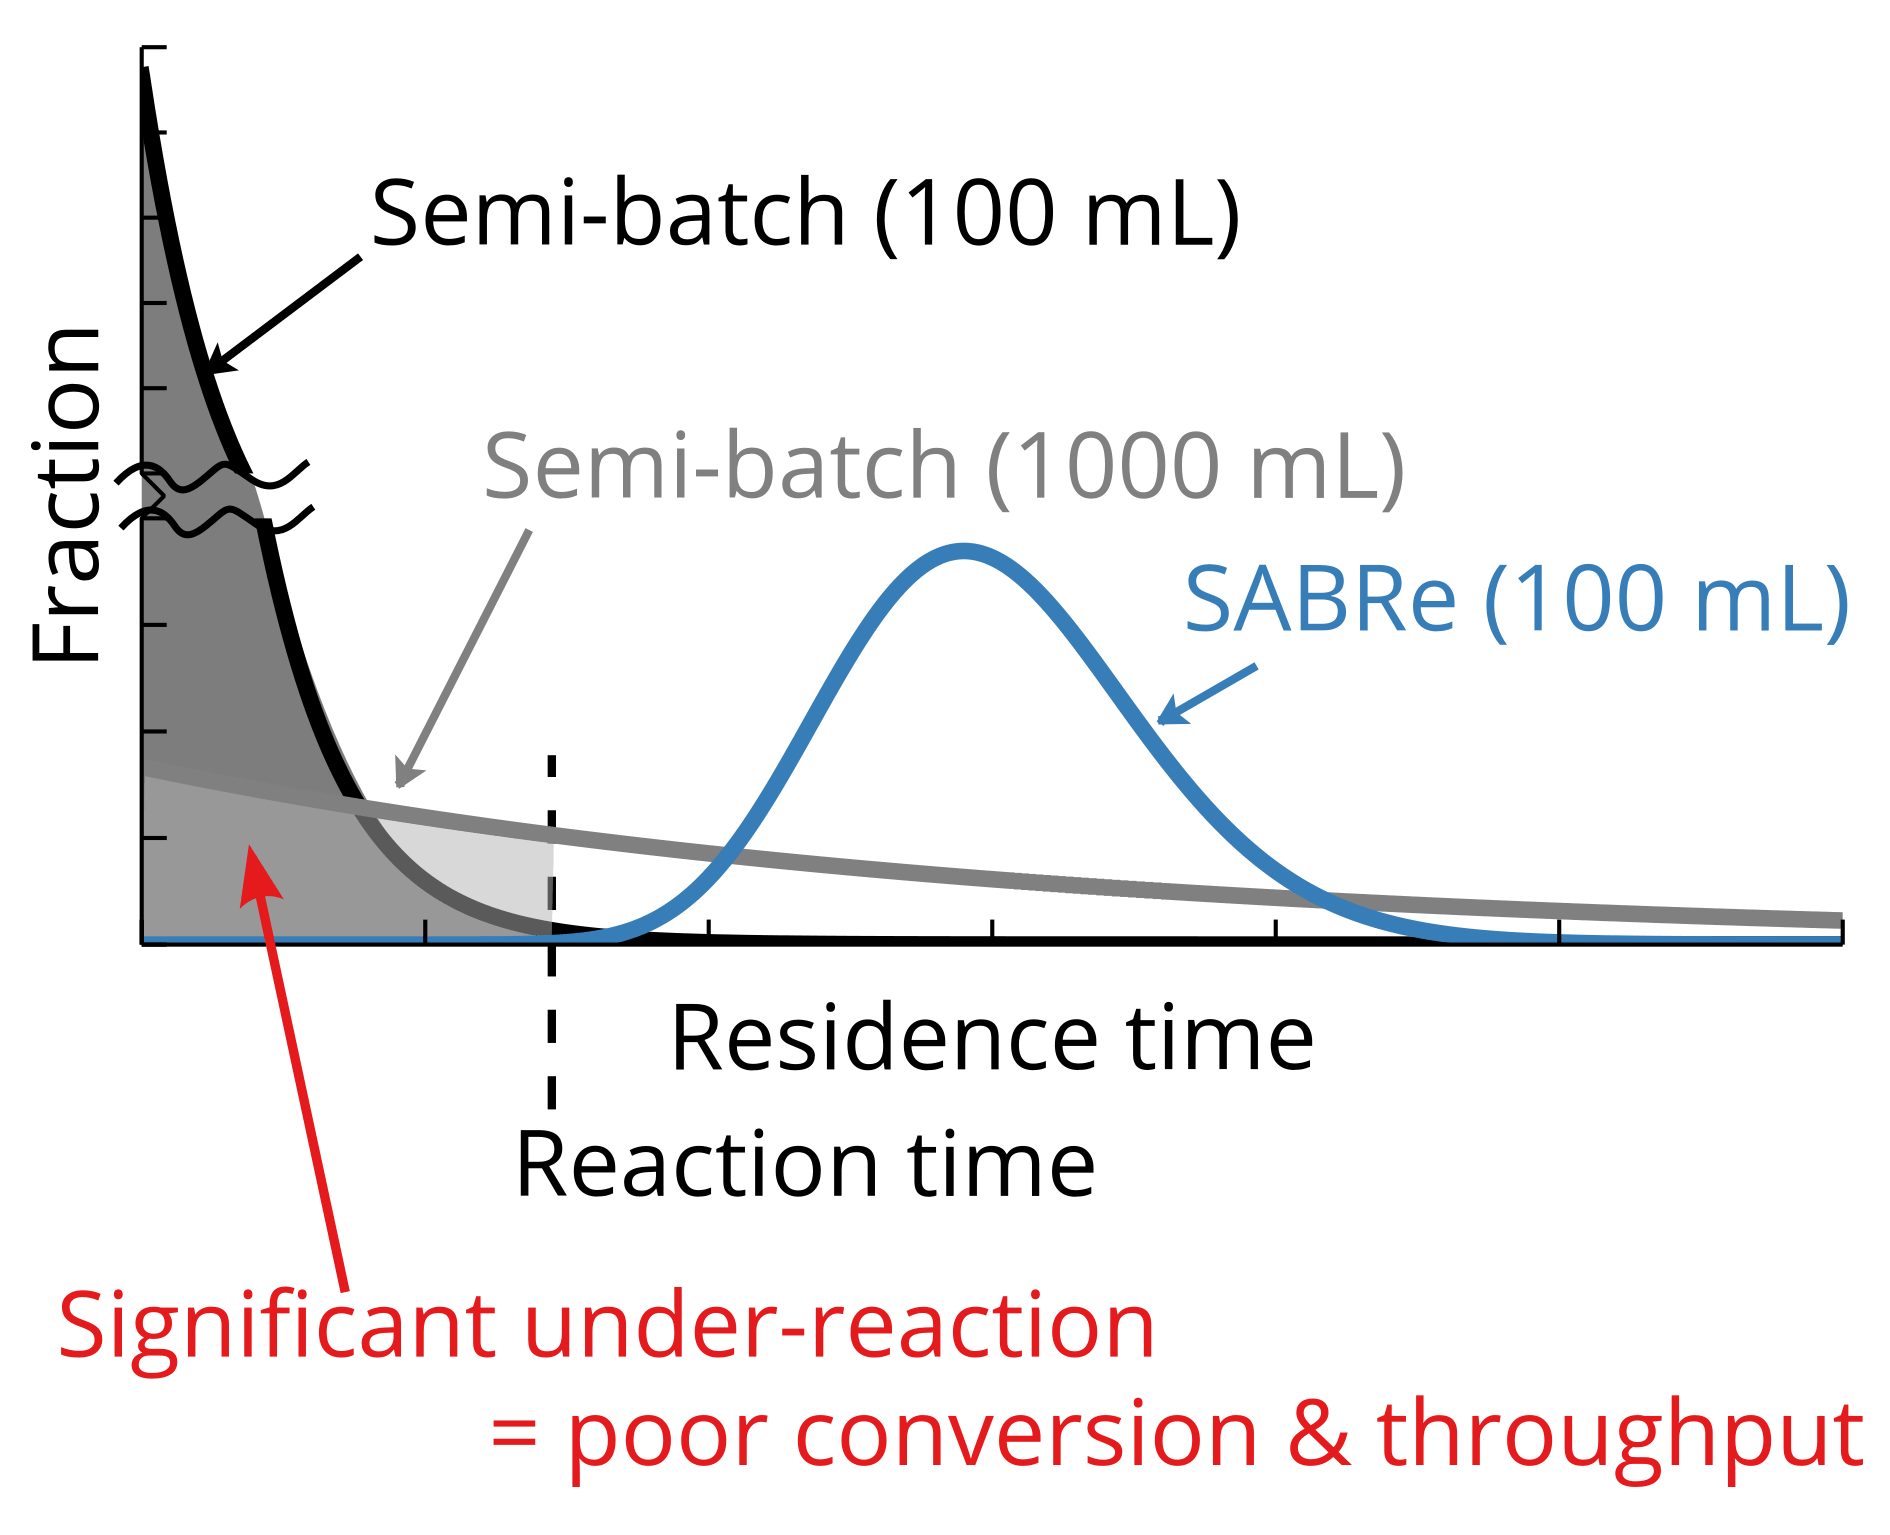 Residence time in flow chemistry